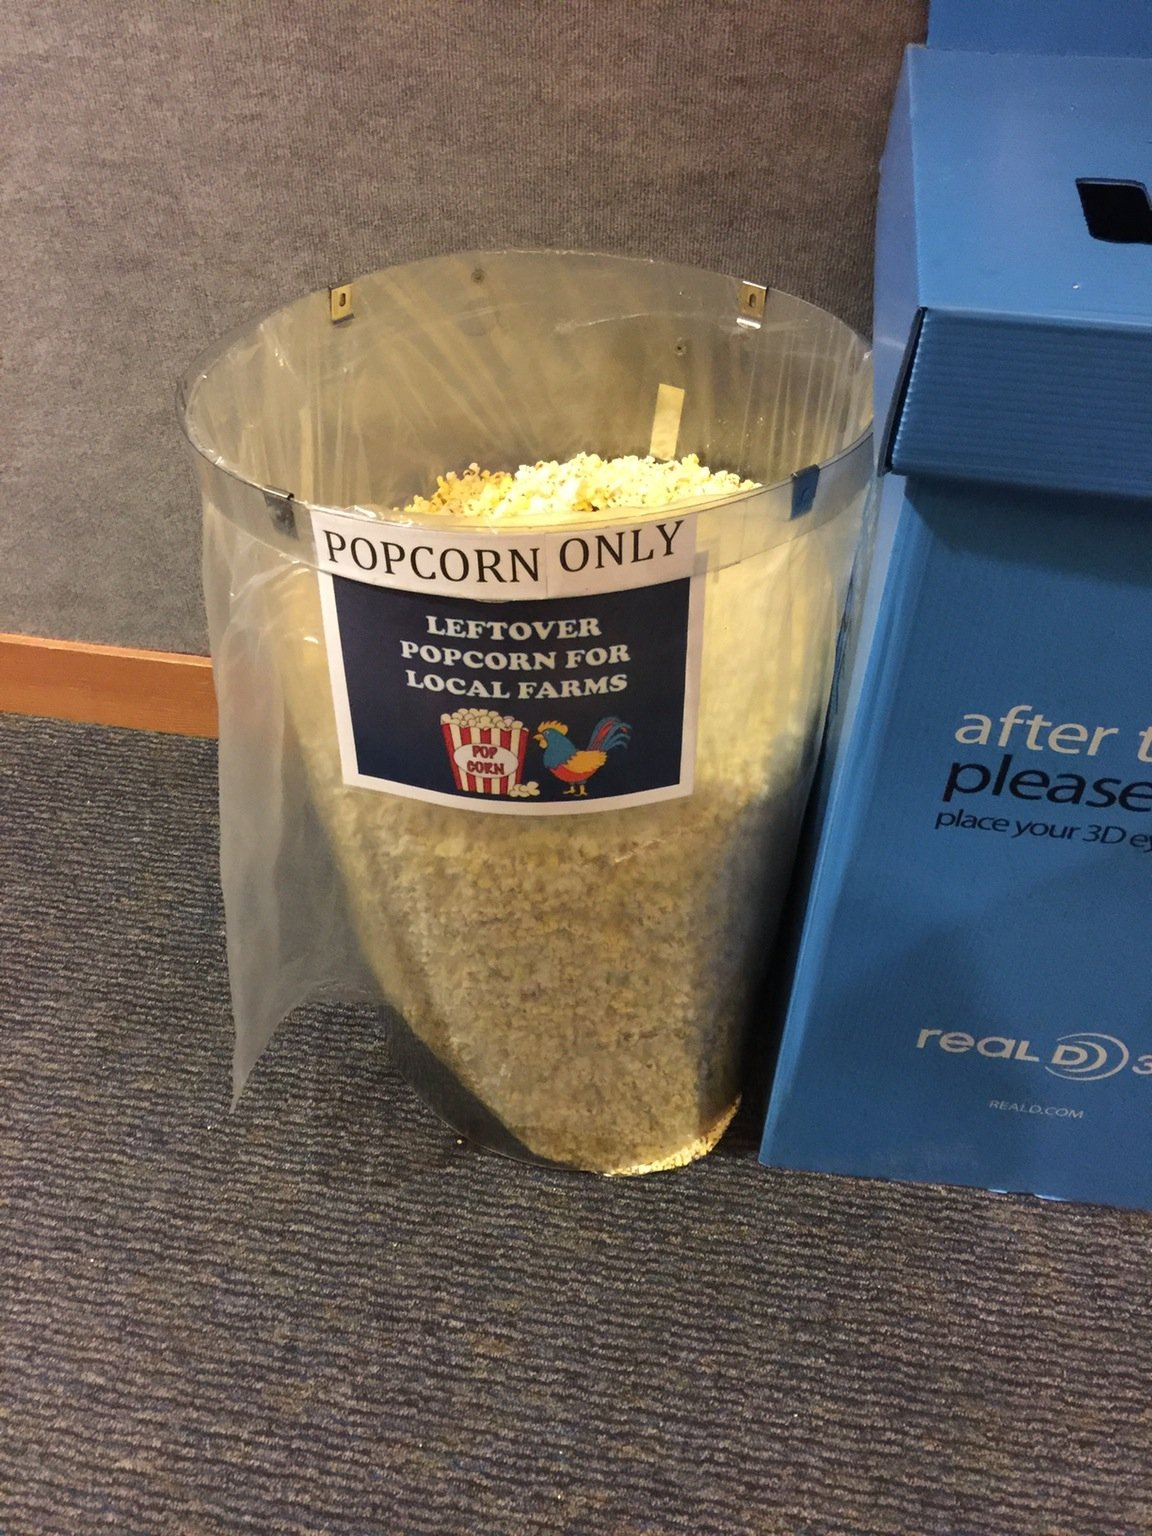 You know you live in a rural area when your local movie theatre does this